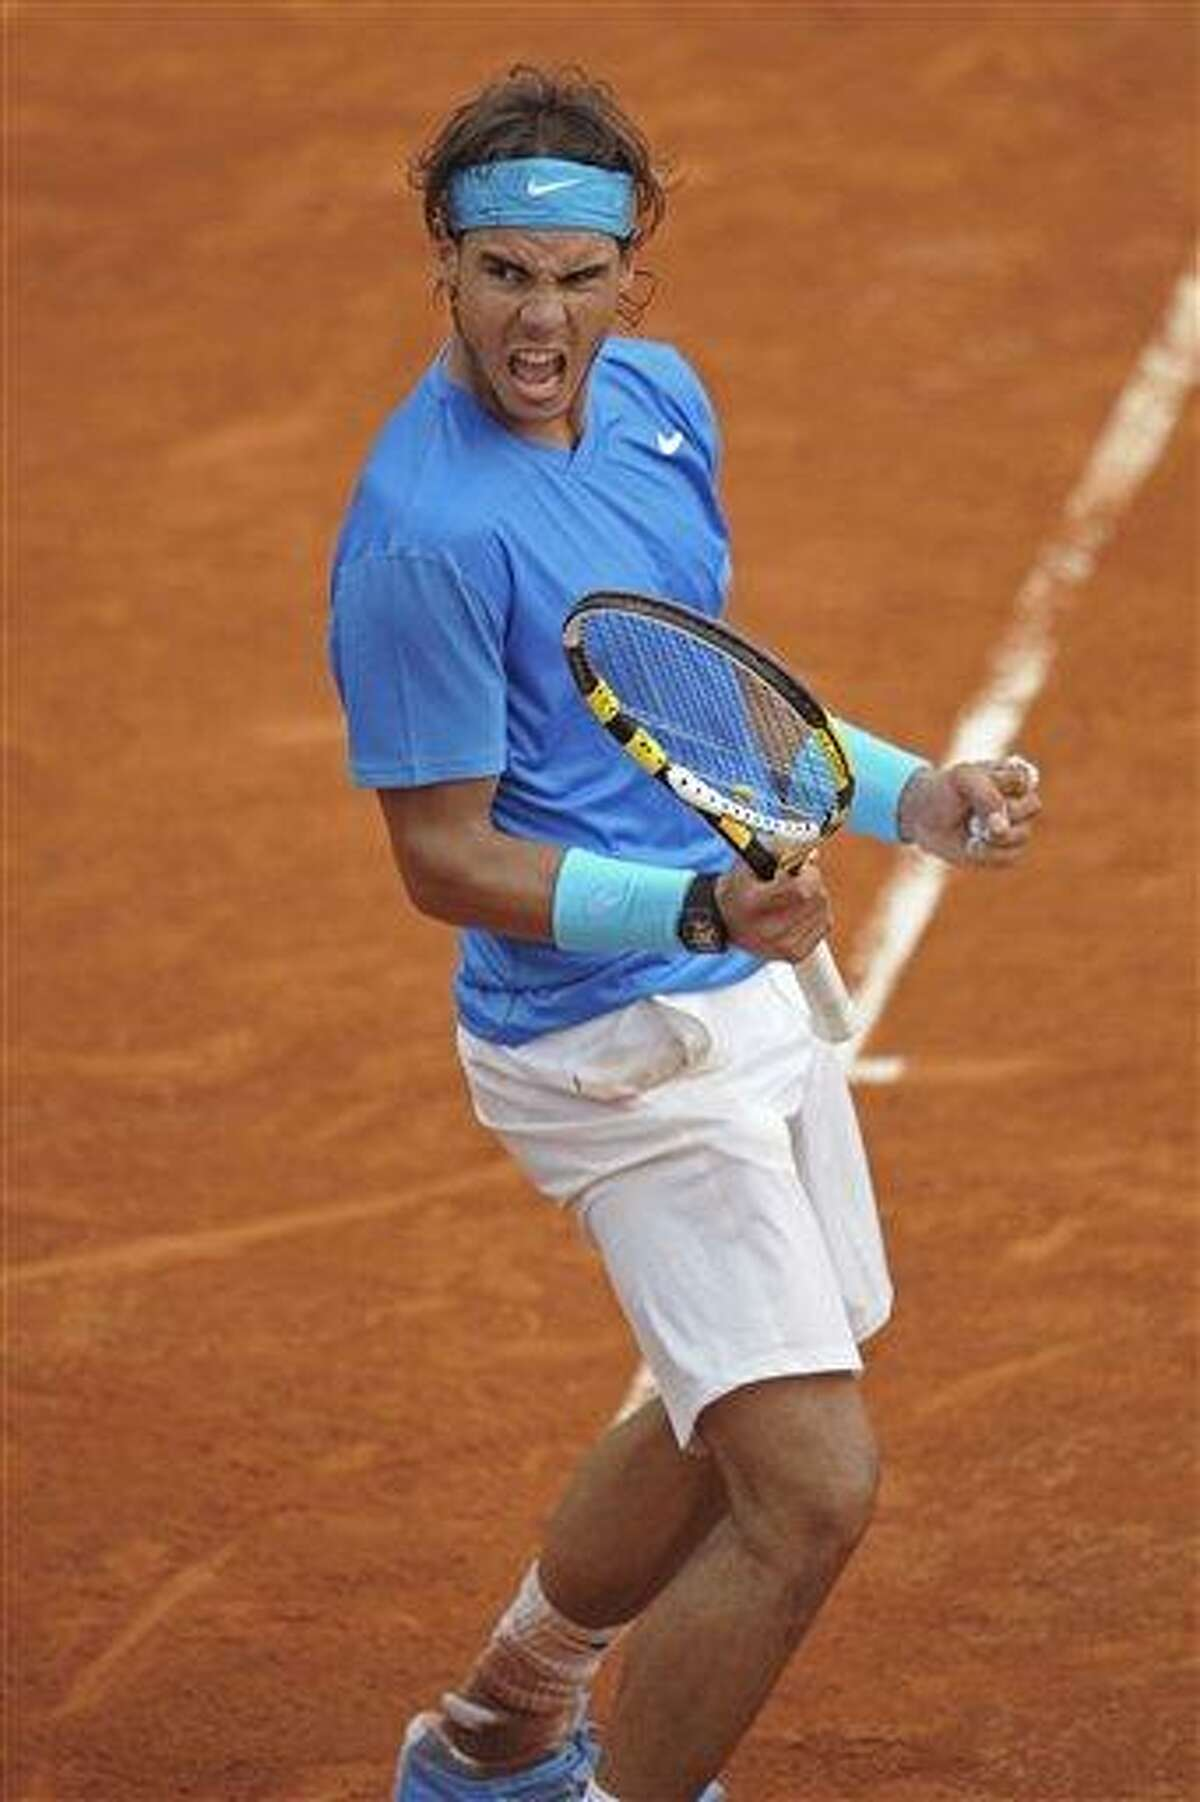 Rafael Nadal of Spain clenches his fist as he takes the second set in his match against Roger Federer of Switzerland in the men's final of the French Open tennis tournament in Roland Garros stadium in Paris, Sunday. (AP Photo/Laurent Baheux)